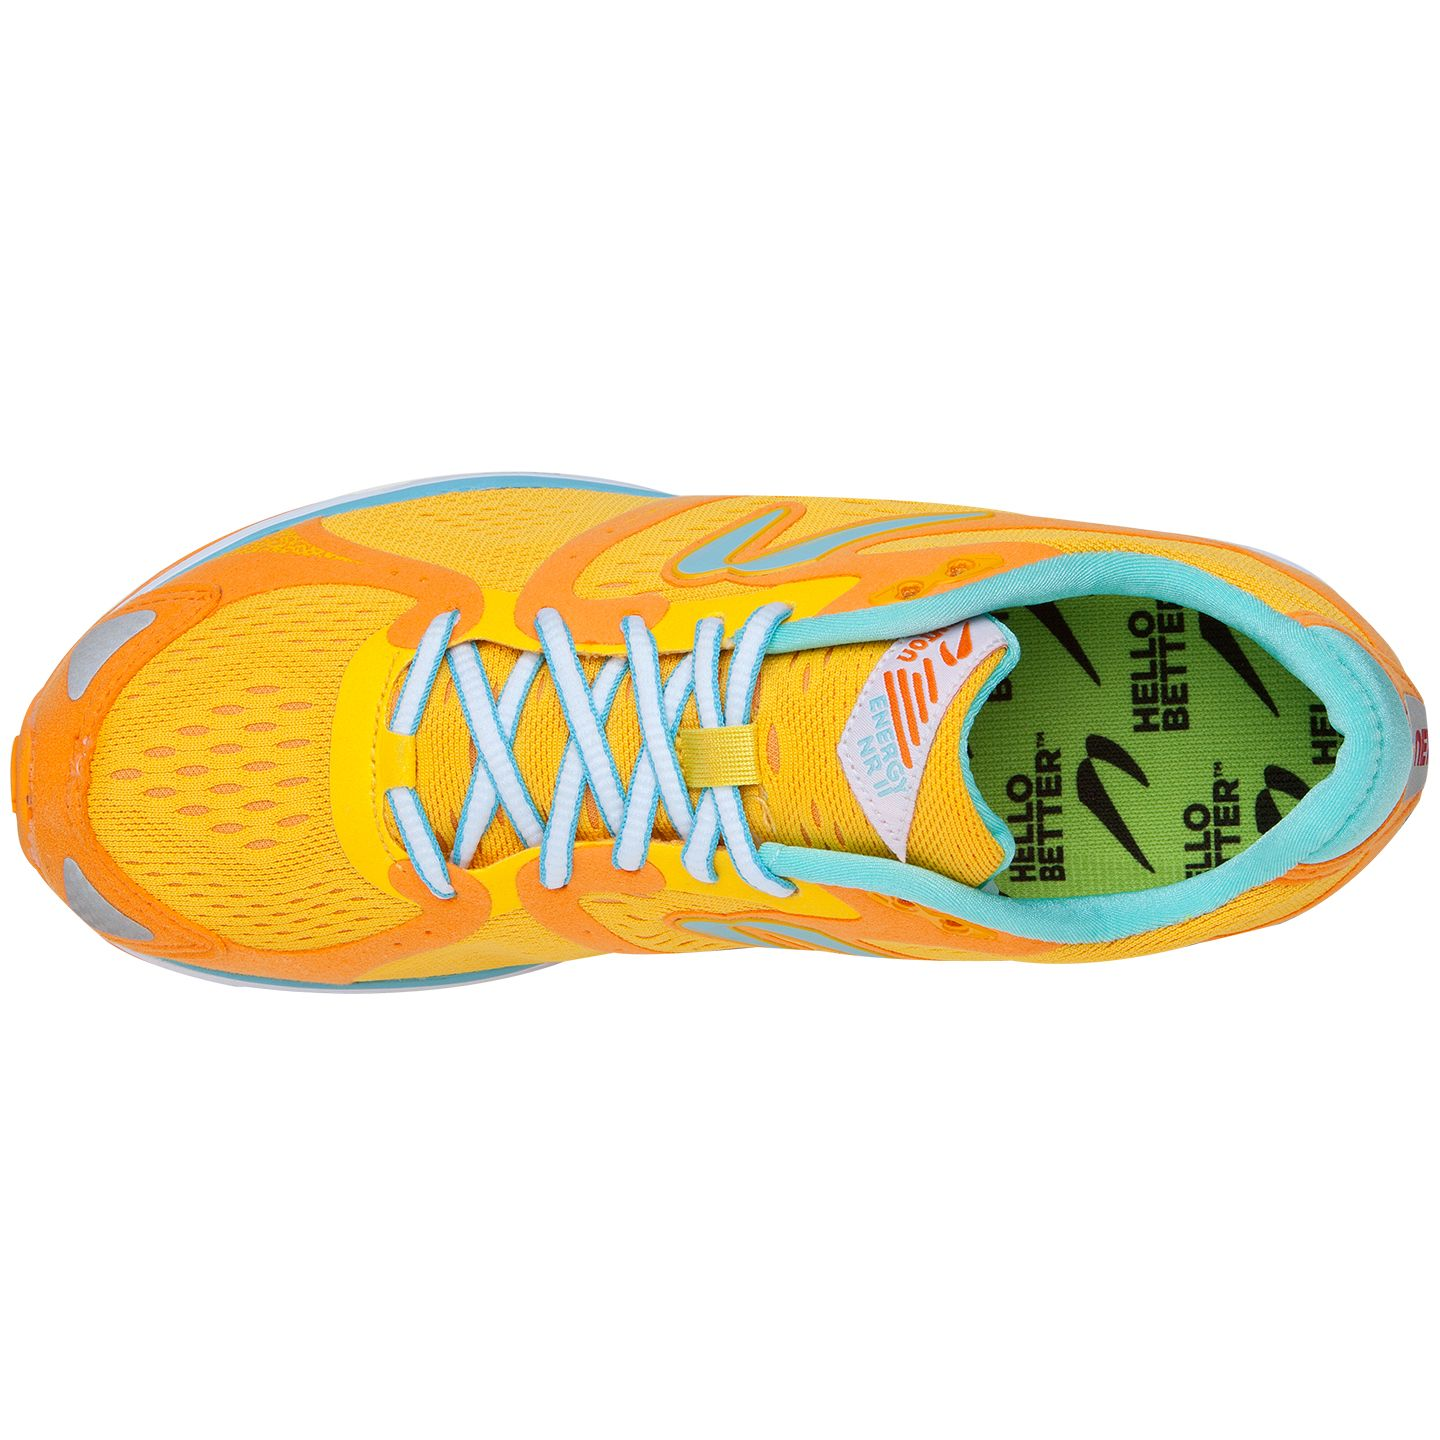 running_shoes_newton_energy_nr_ii_stability_ladies_running_shoes_top